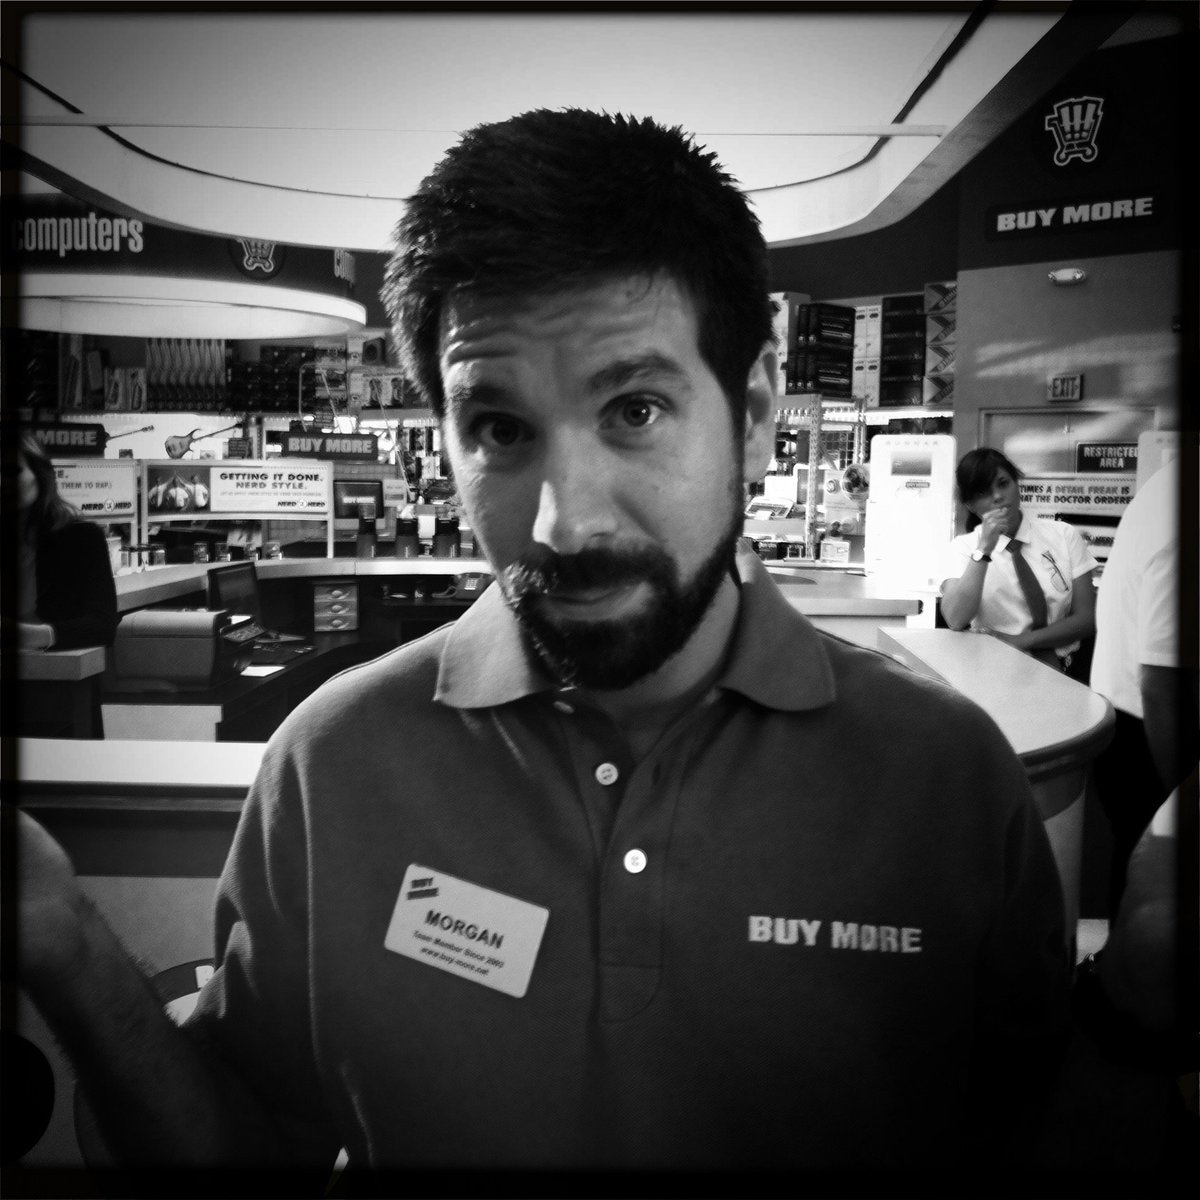 Joshua Gomez Wiki Age Net Worth Movie Facts To Know 11/20/1975 (45 years old) bayonne, new jersey, united states. joshua gomez wiki age net worth